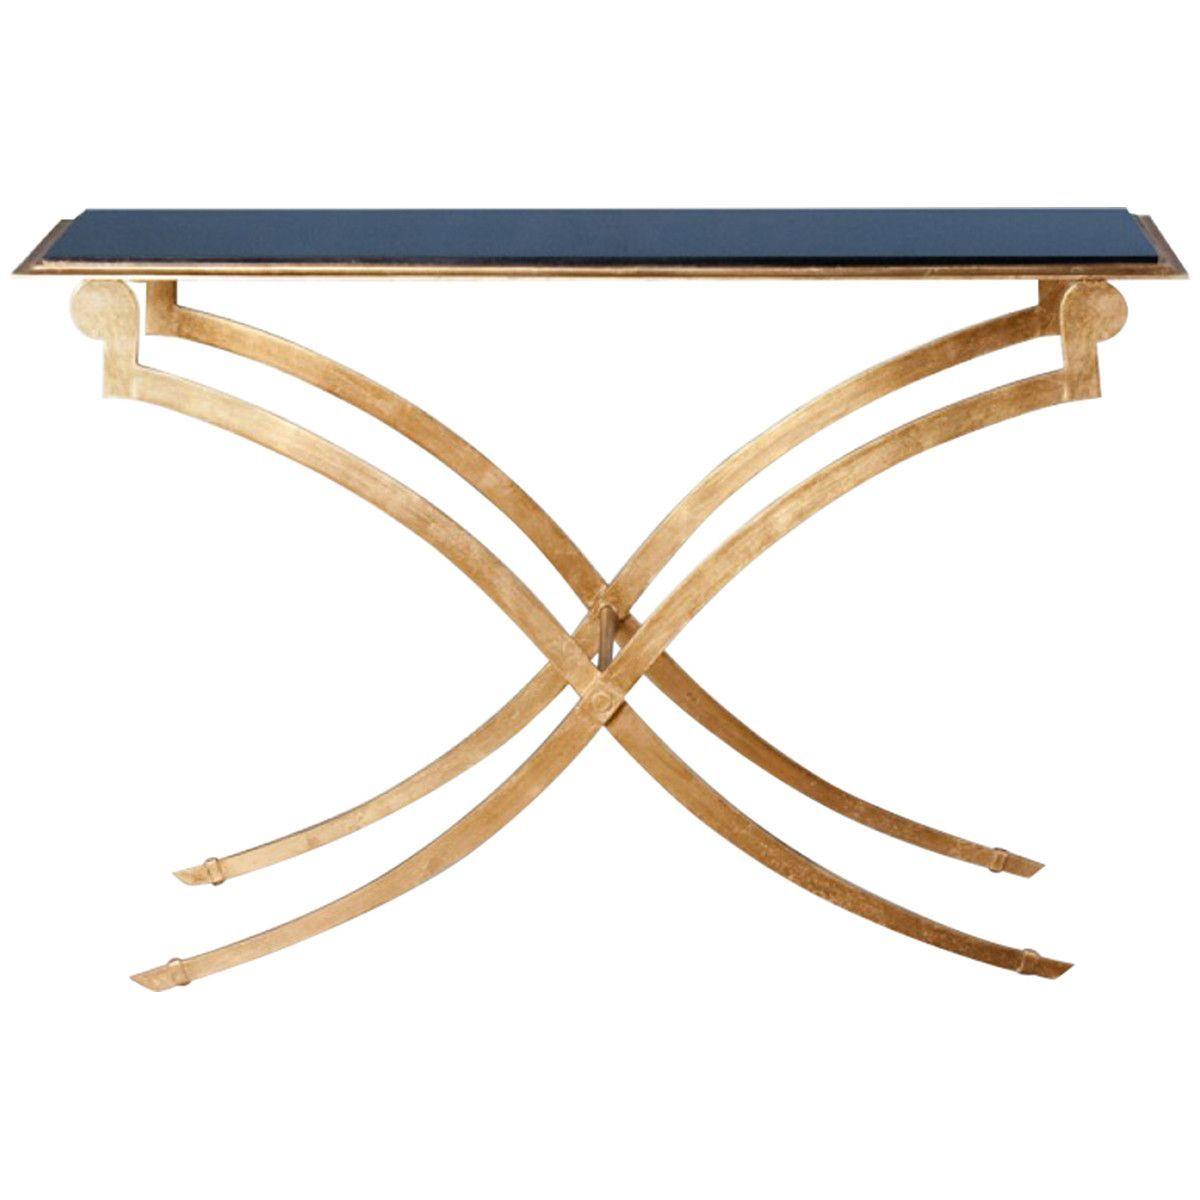 Interlude home maybeck gold leaf console shop now on pinterest